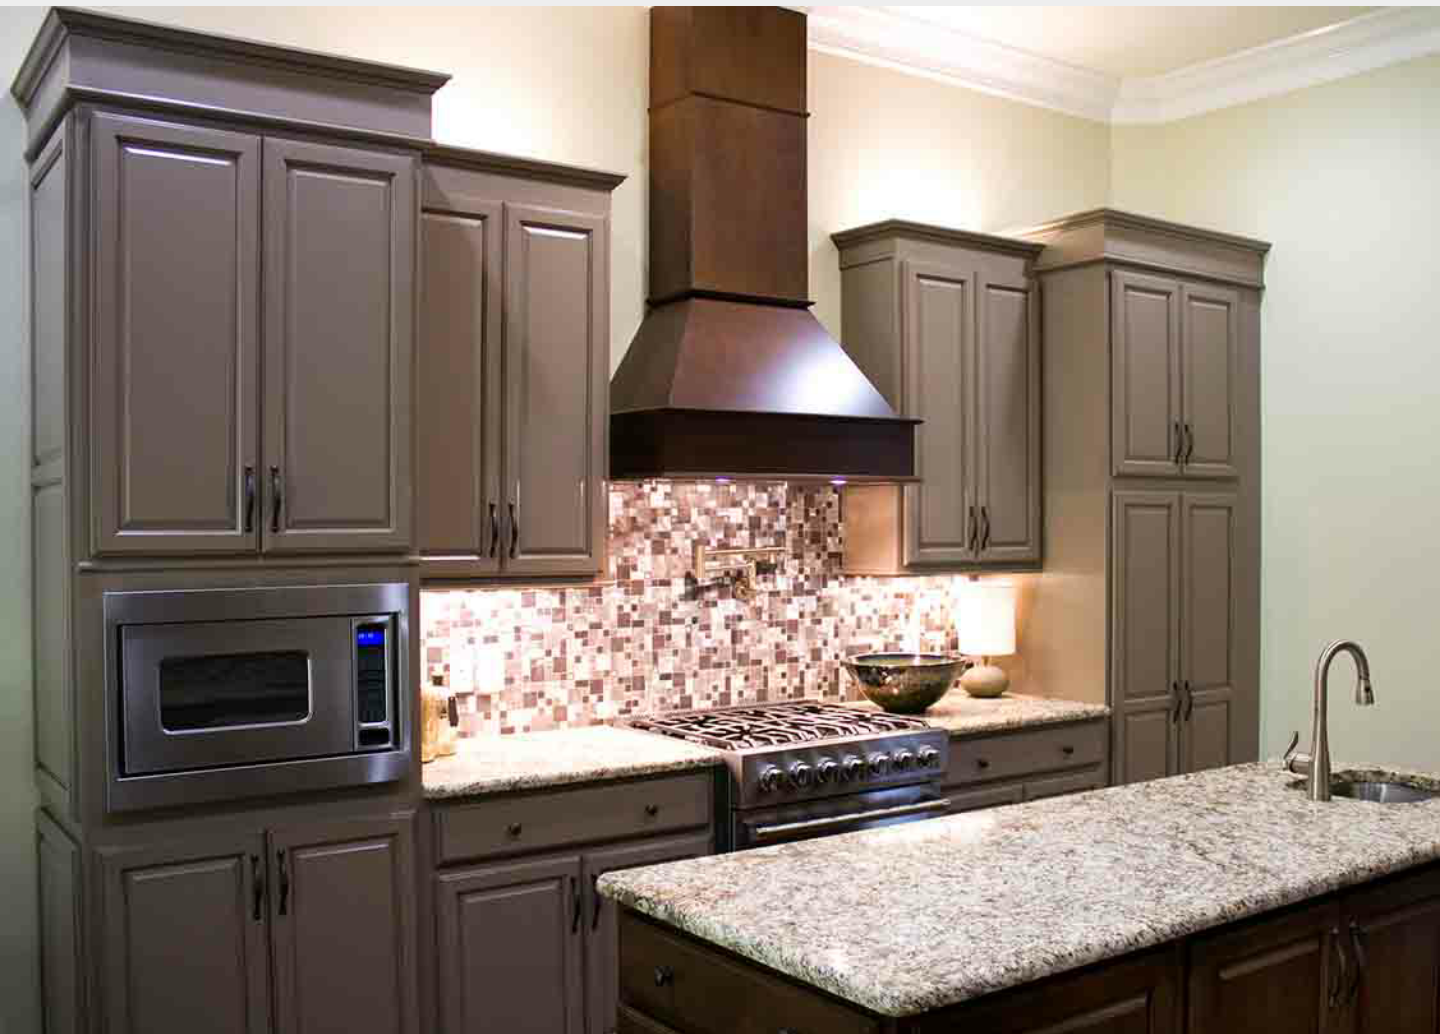 Cabinet Refinishing Denver Cabinets Refinishing And Cabinet Painting